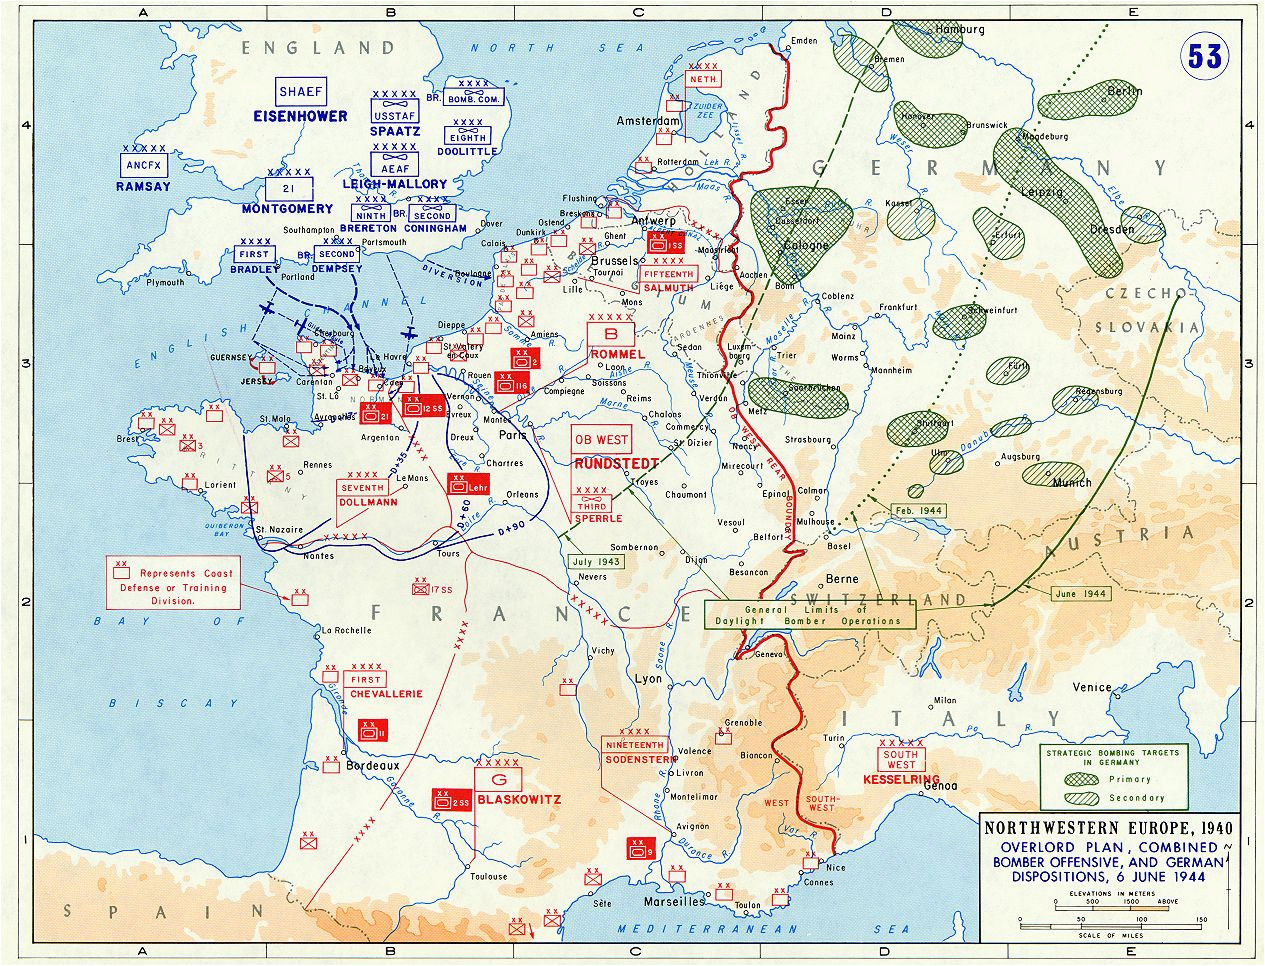 overlord plan combined bomber offensive and german